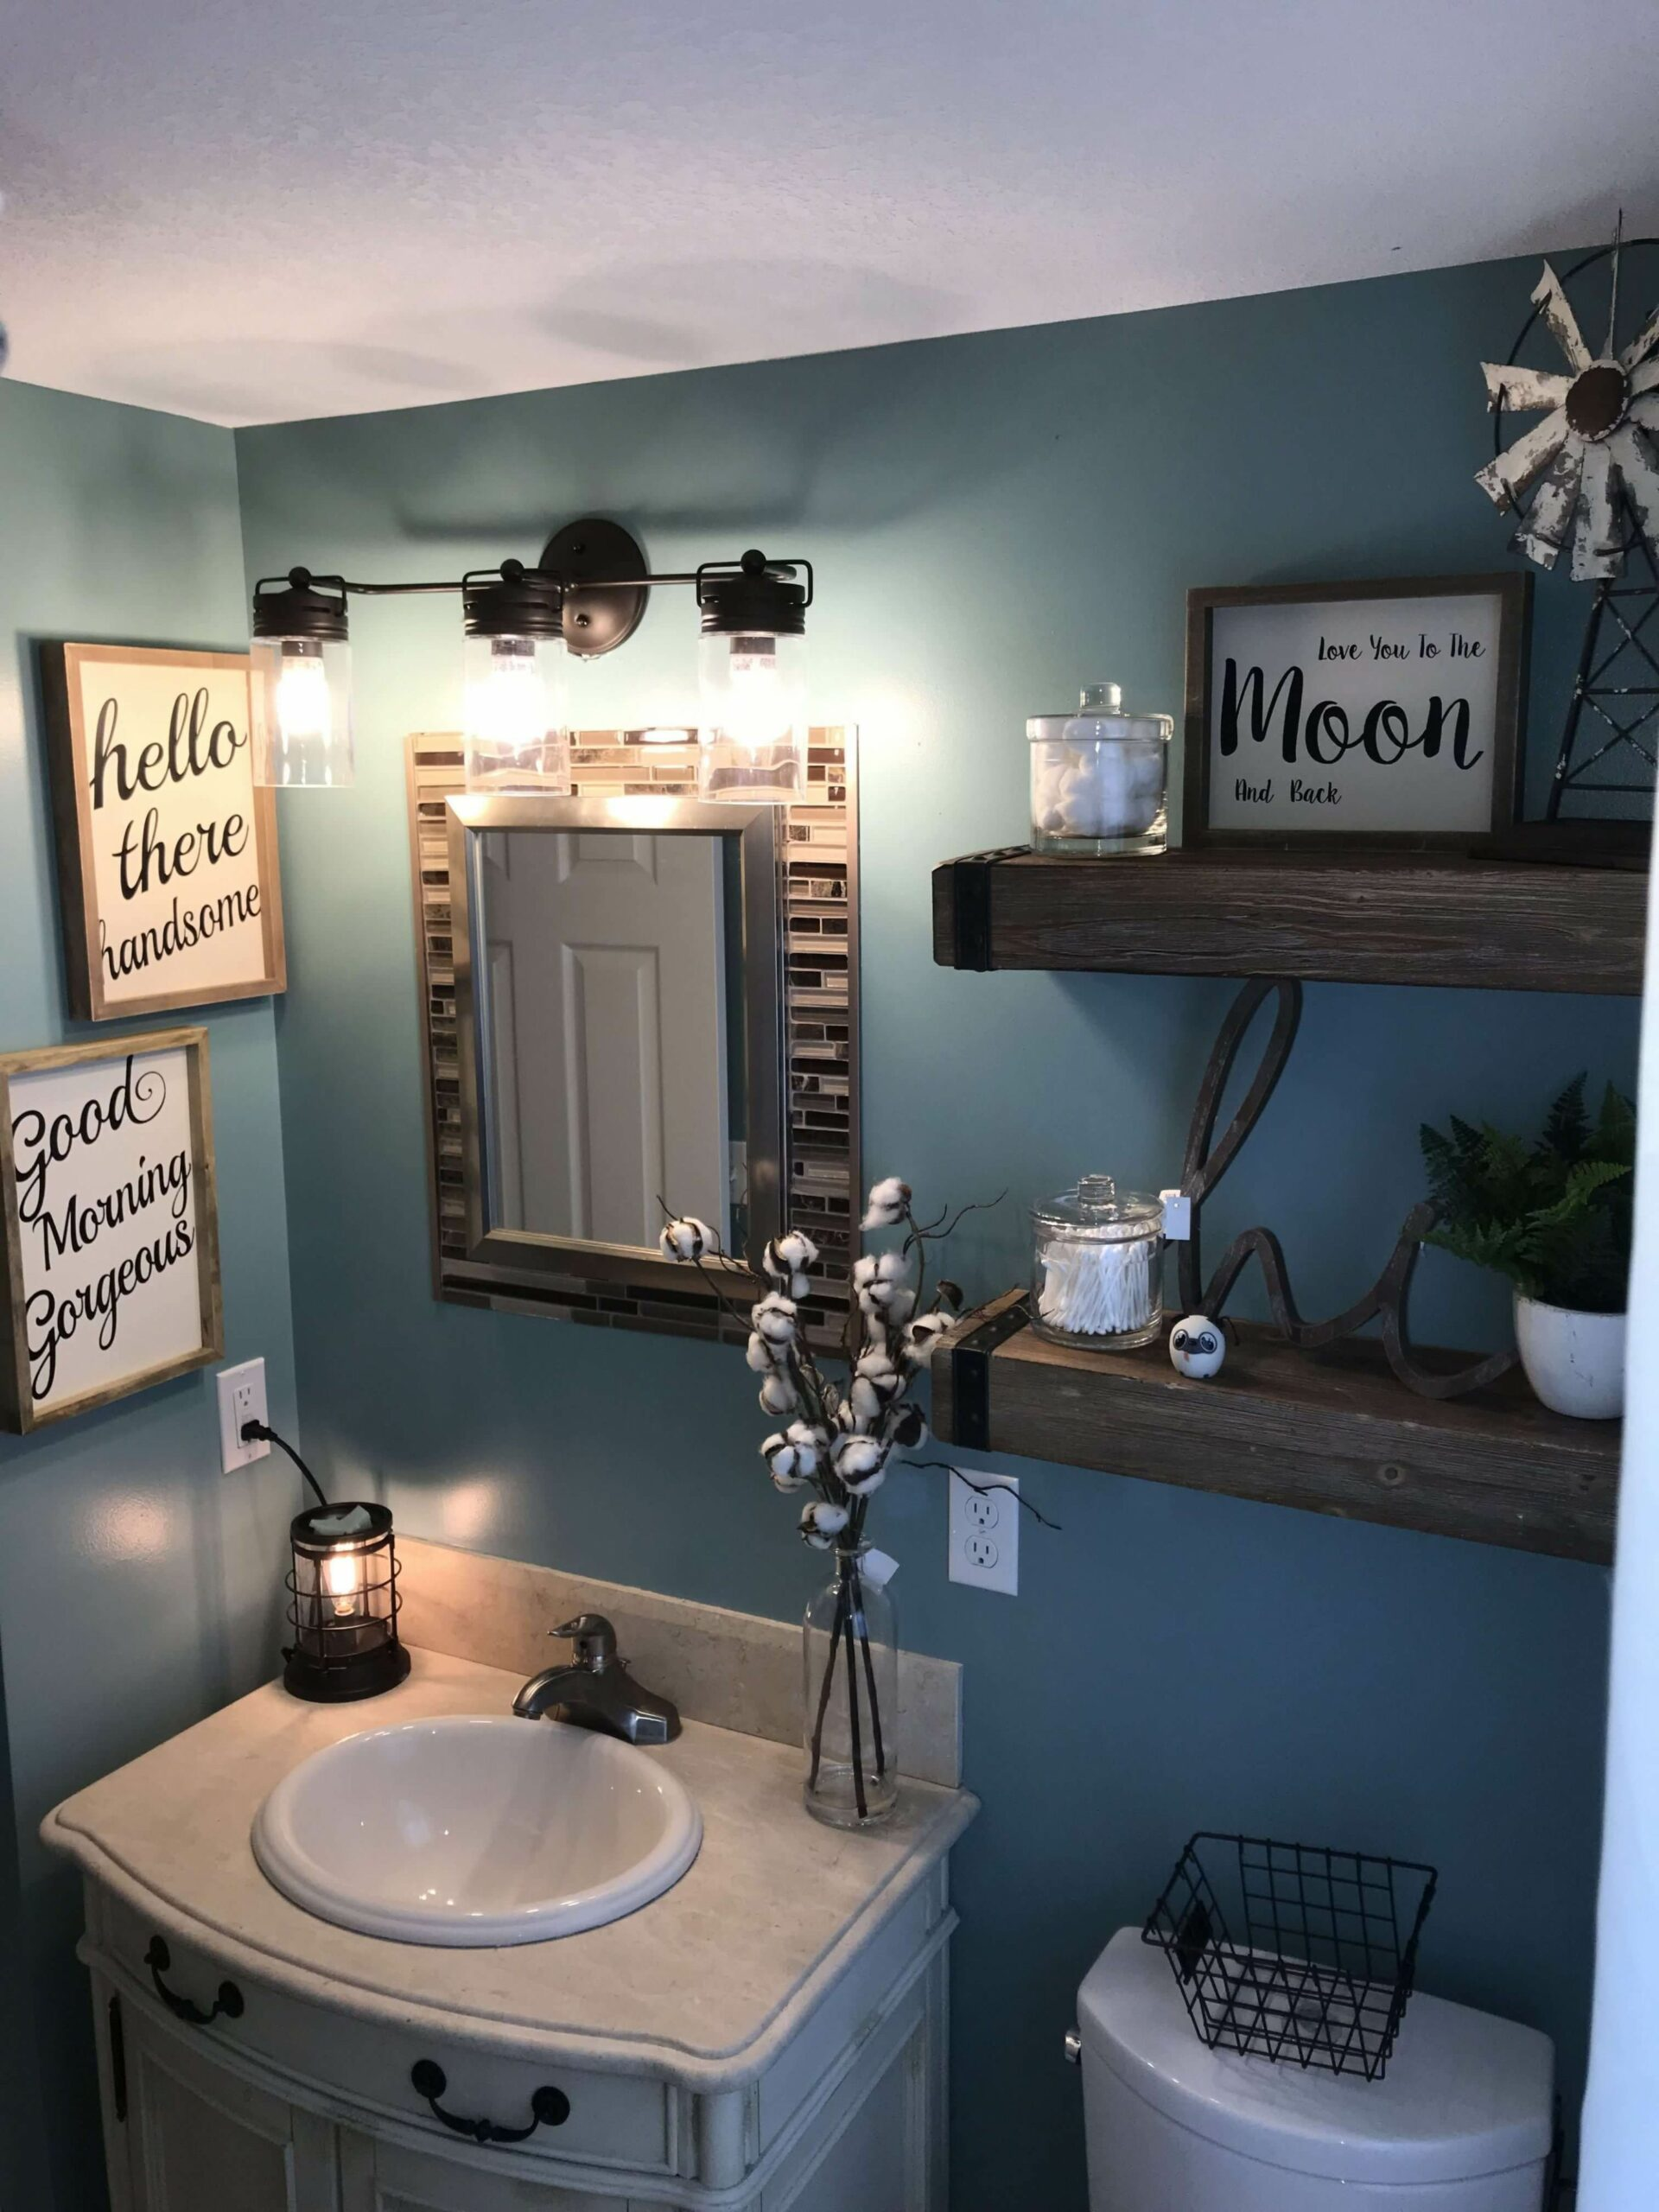 Top 11 Best Bathroom Wall Decor Ideas To Check Out | Small ..